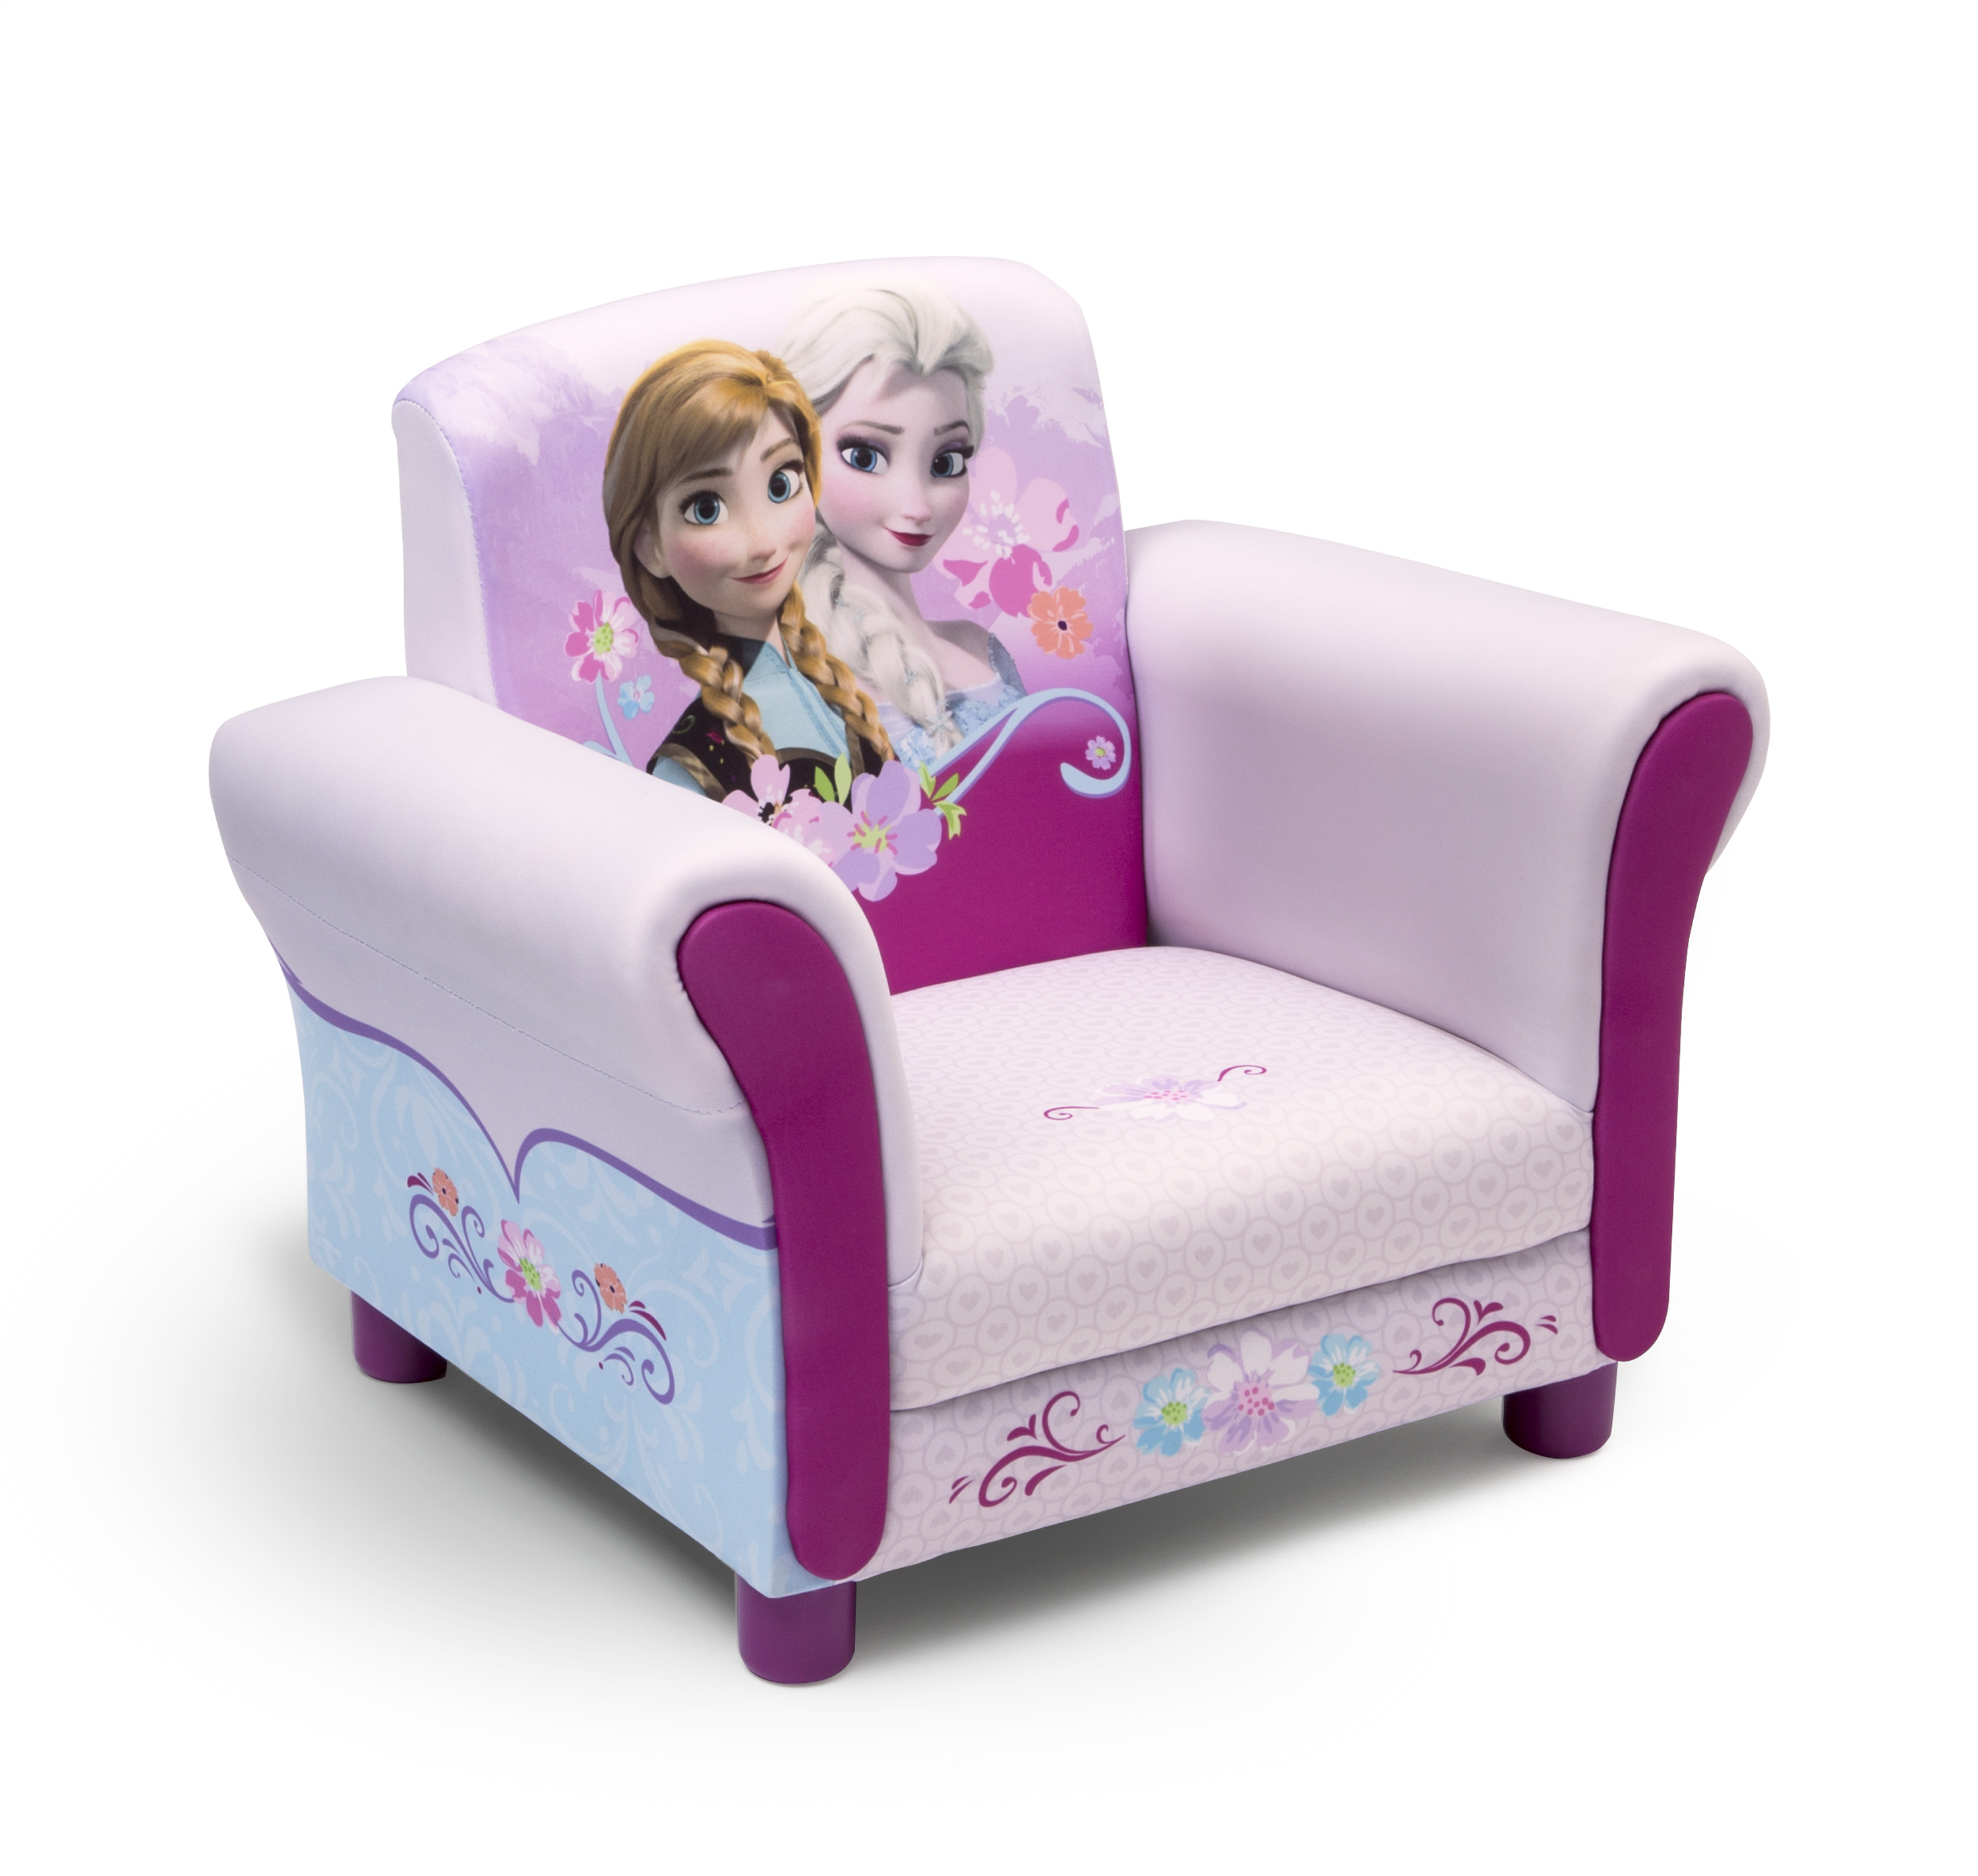 Toddler Couch Delta Children Frozen Upholstered Chair Baby Toddler